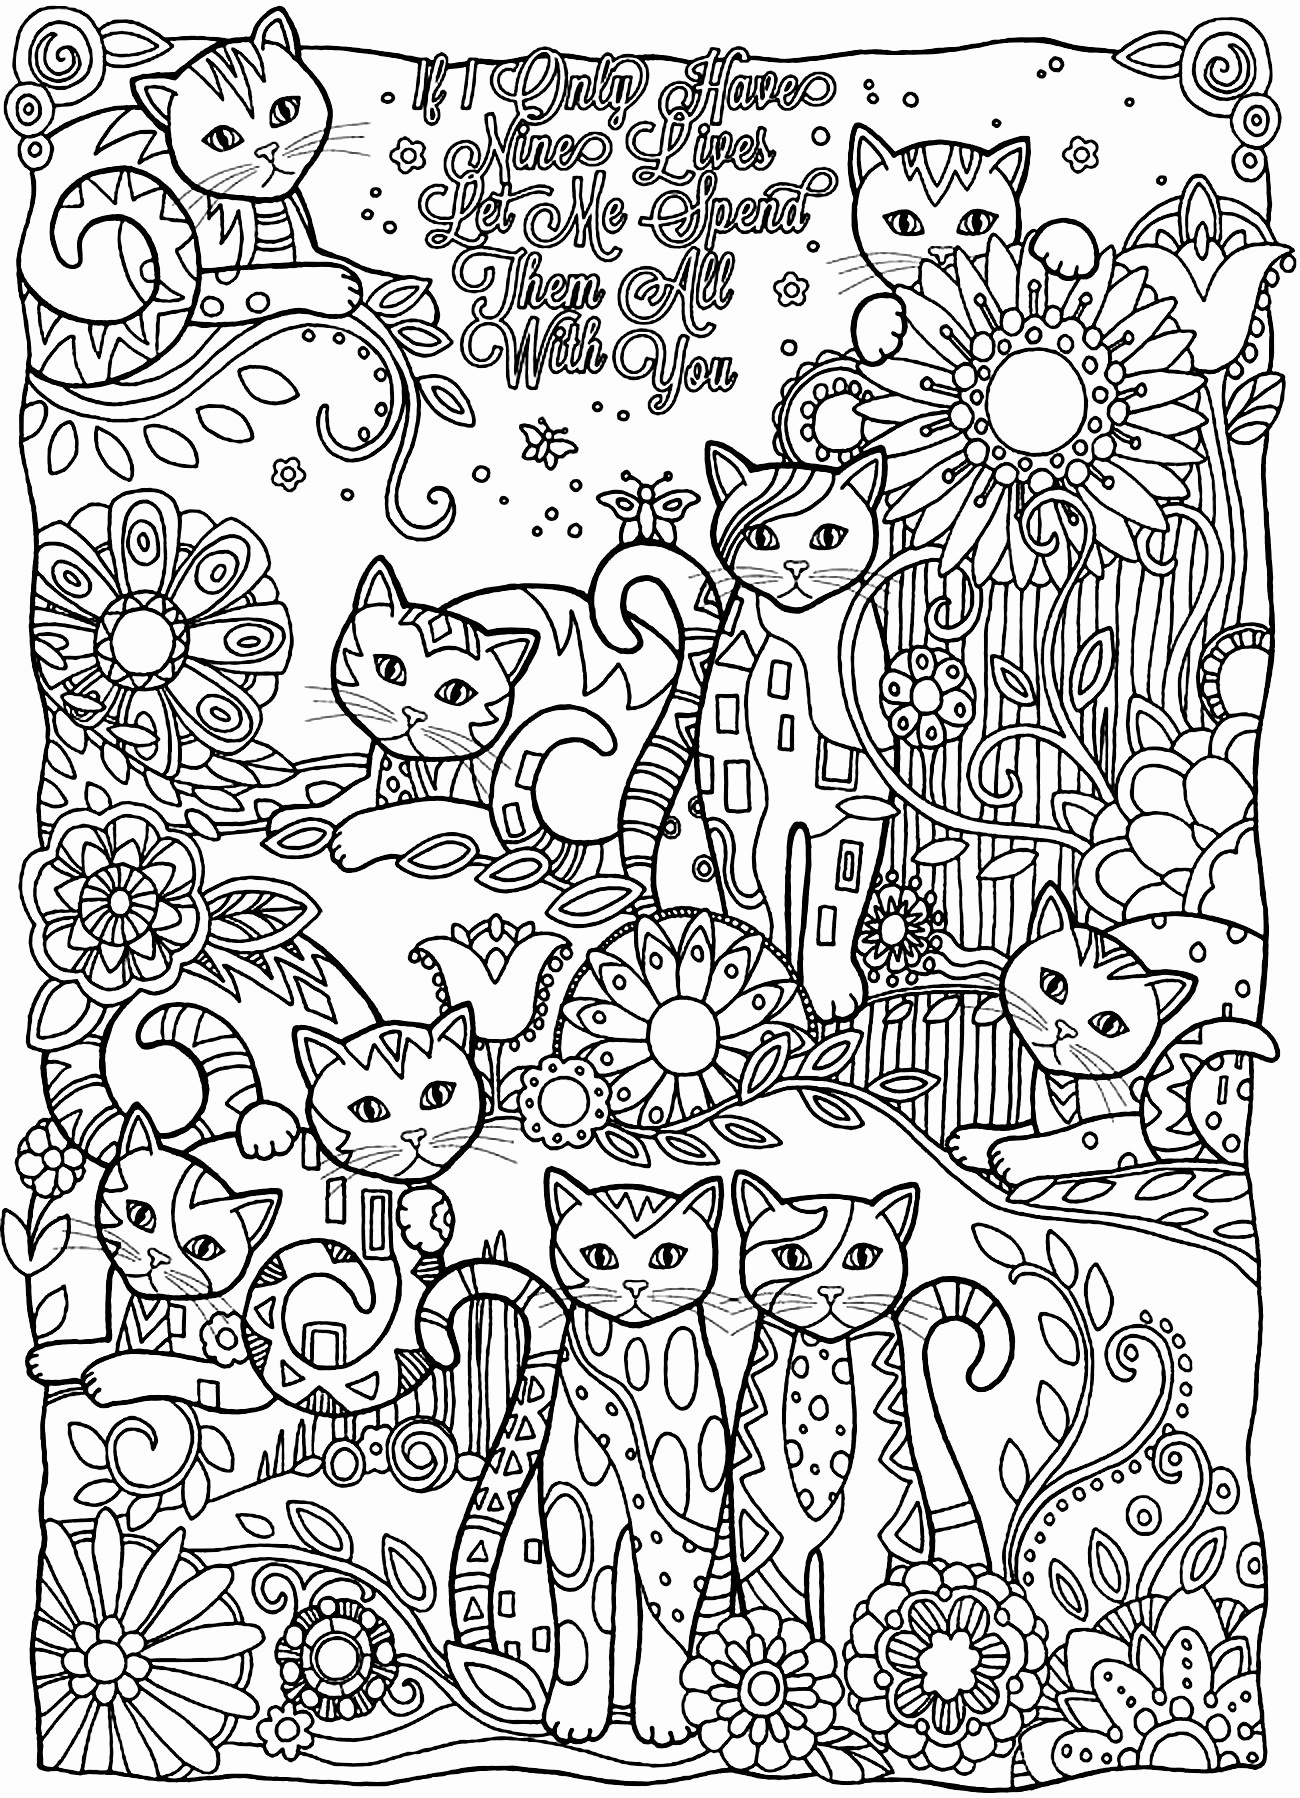 Free Printable Coloring Pages For Adults Only Easy New - Free Printable Coloring Pages For Adults Only